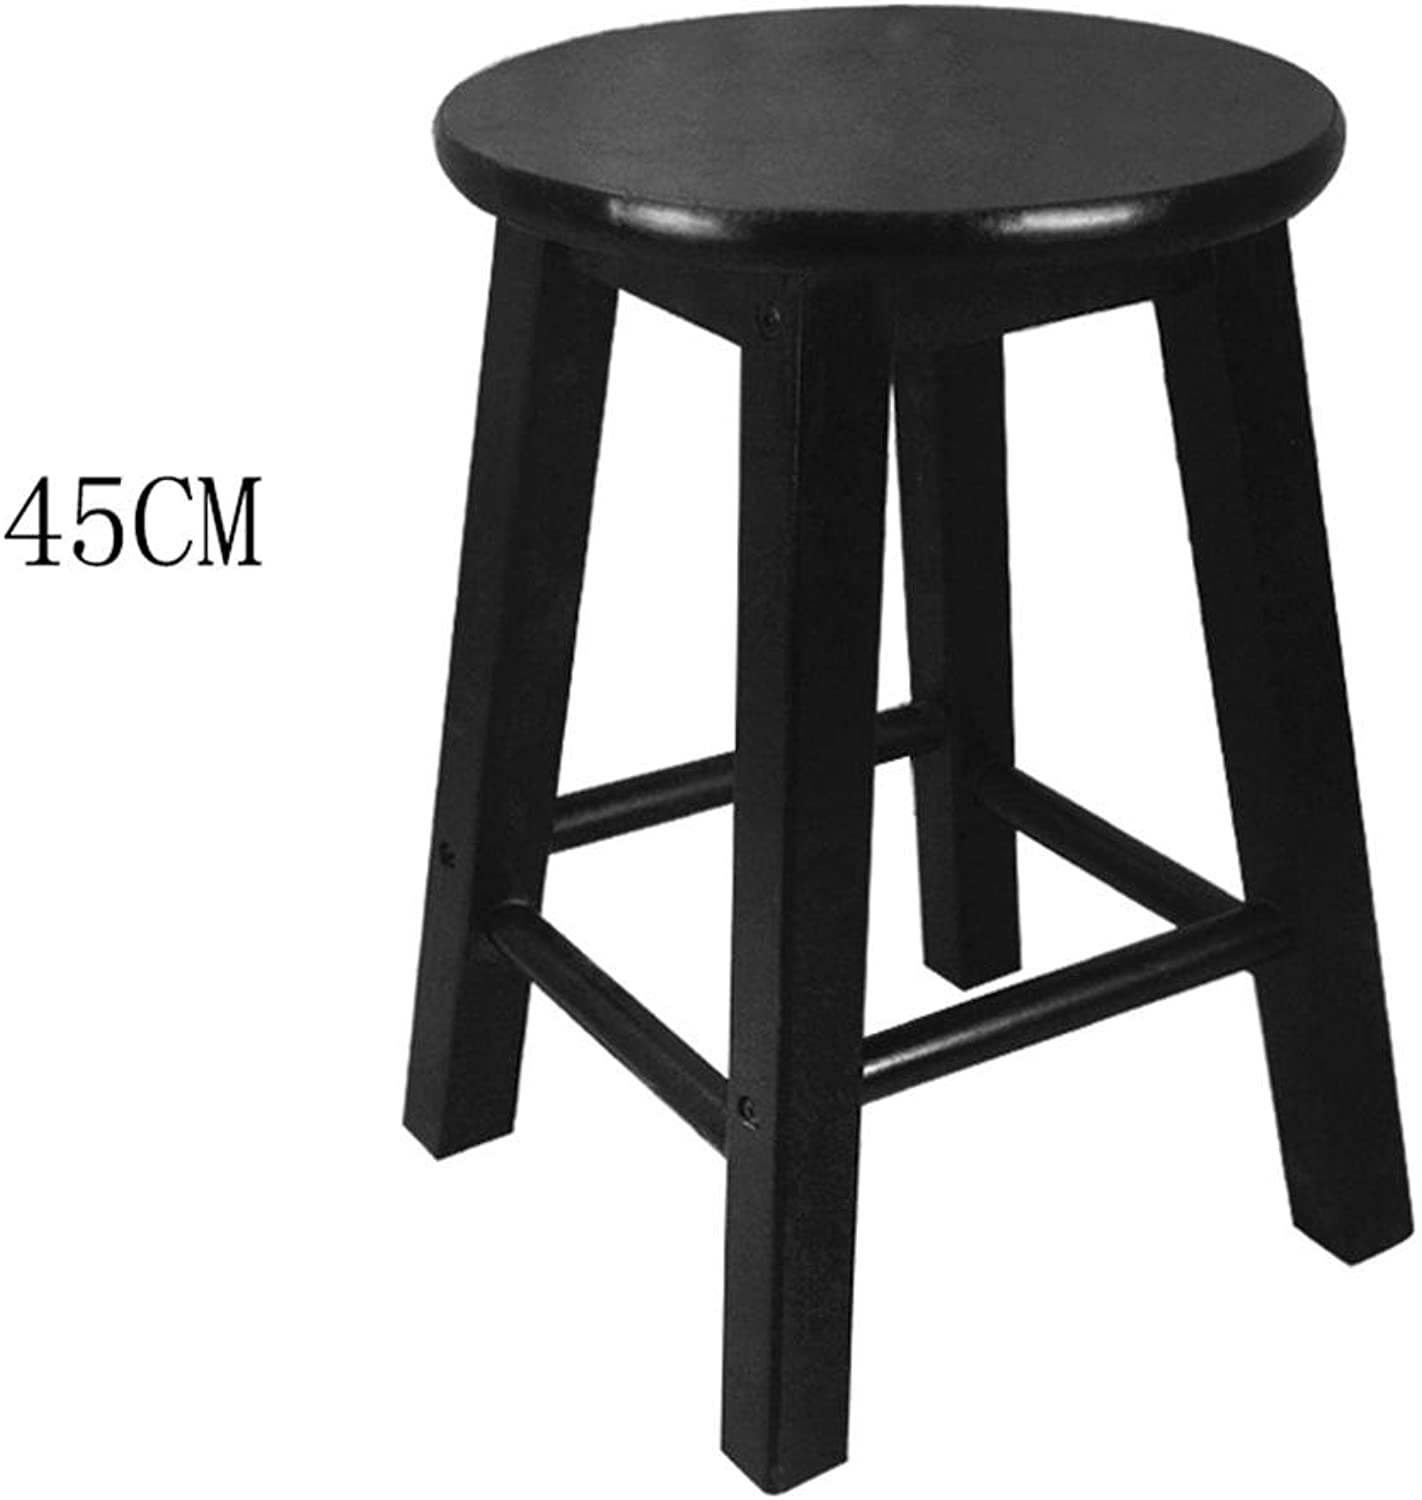 Bar stool,GZD Retro kitchen stools High Stool Round Bar Stools Wood Seat Breakfast Bar, All solid wood height 45cm 50cm 60cm 70cm 80cm for Kitchen Counter Bar , 45cm , 4